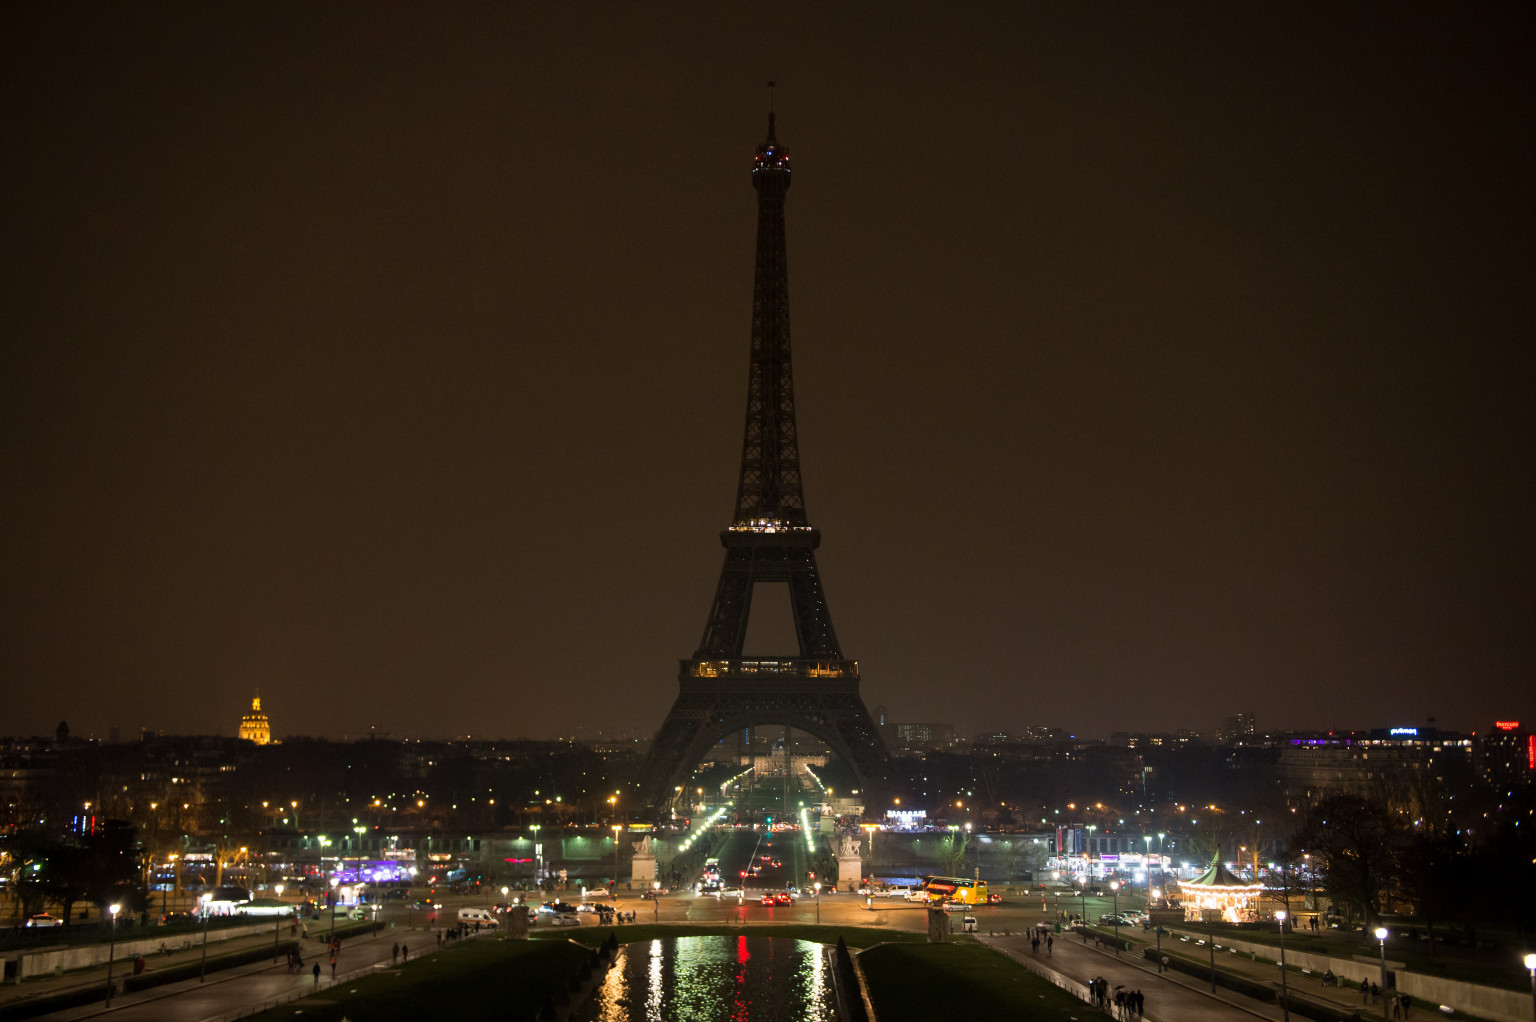 Paris illumination ban 39 city of light 39 begins turning off its lights - Illumination a paris ...